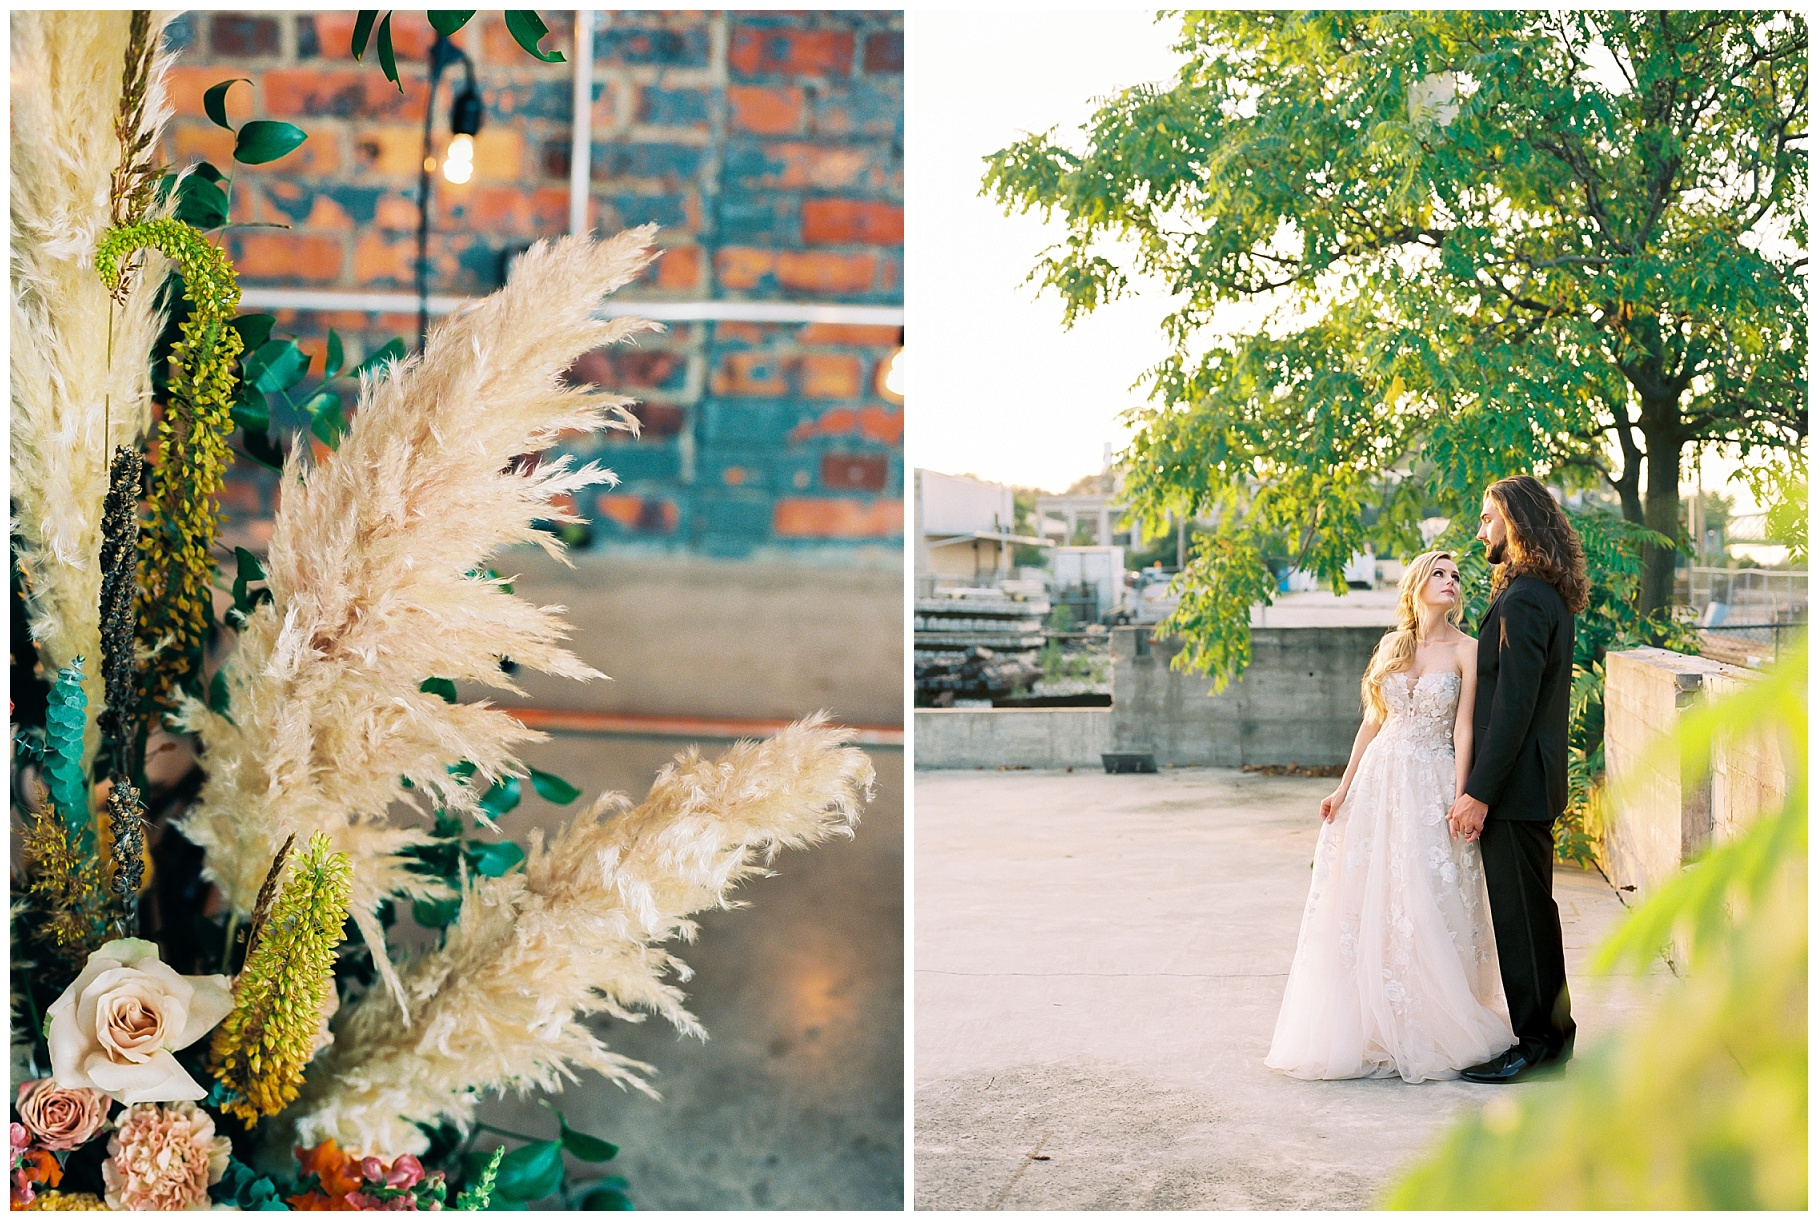 Urban Romance Wedding with Copper Accents at The Millbottom by Kelsi Kliethermes Photography Best Columbia Missouri Wedding Photographer_0037.jpg